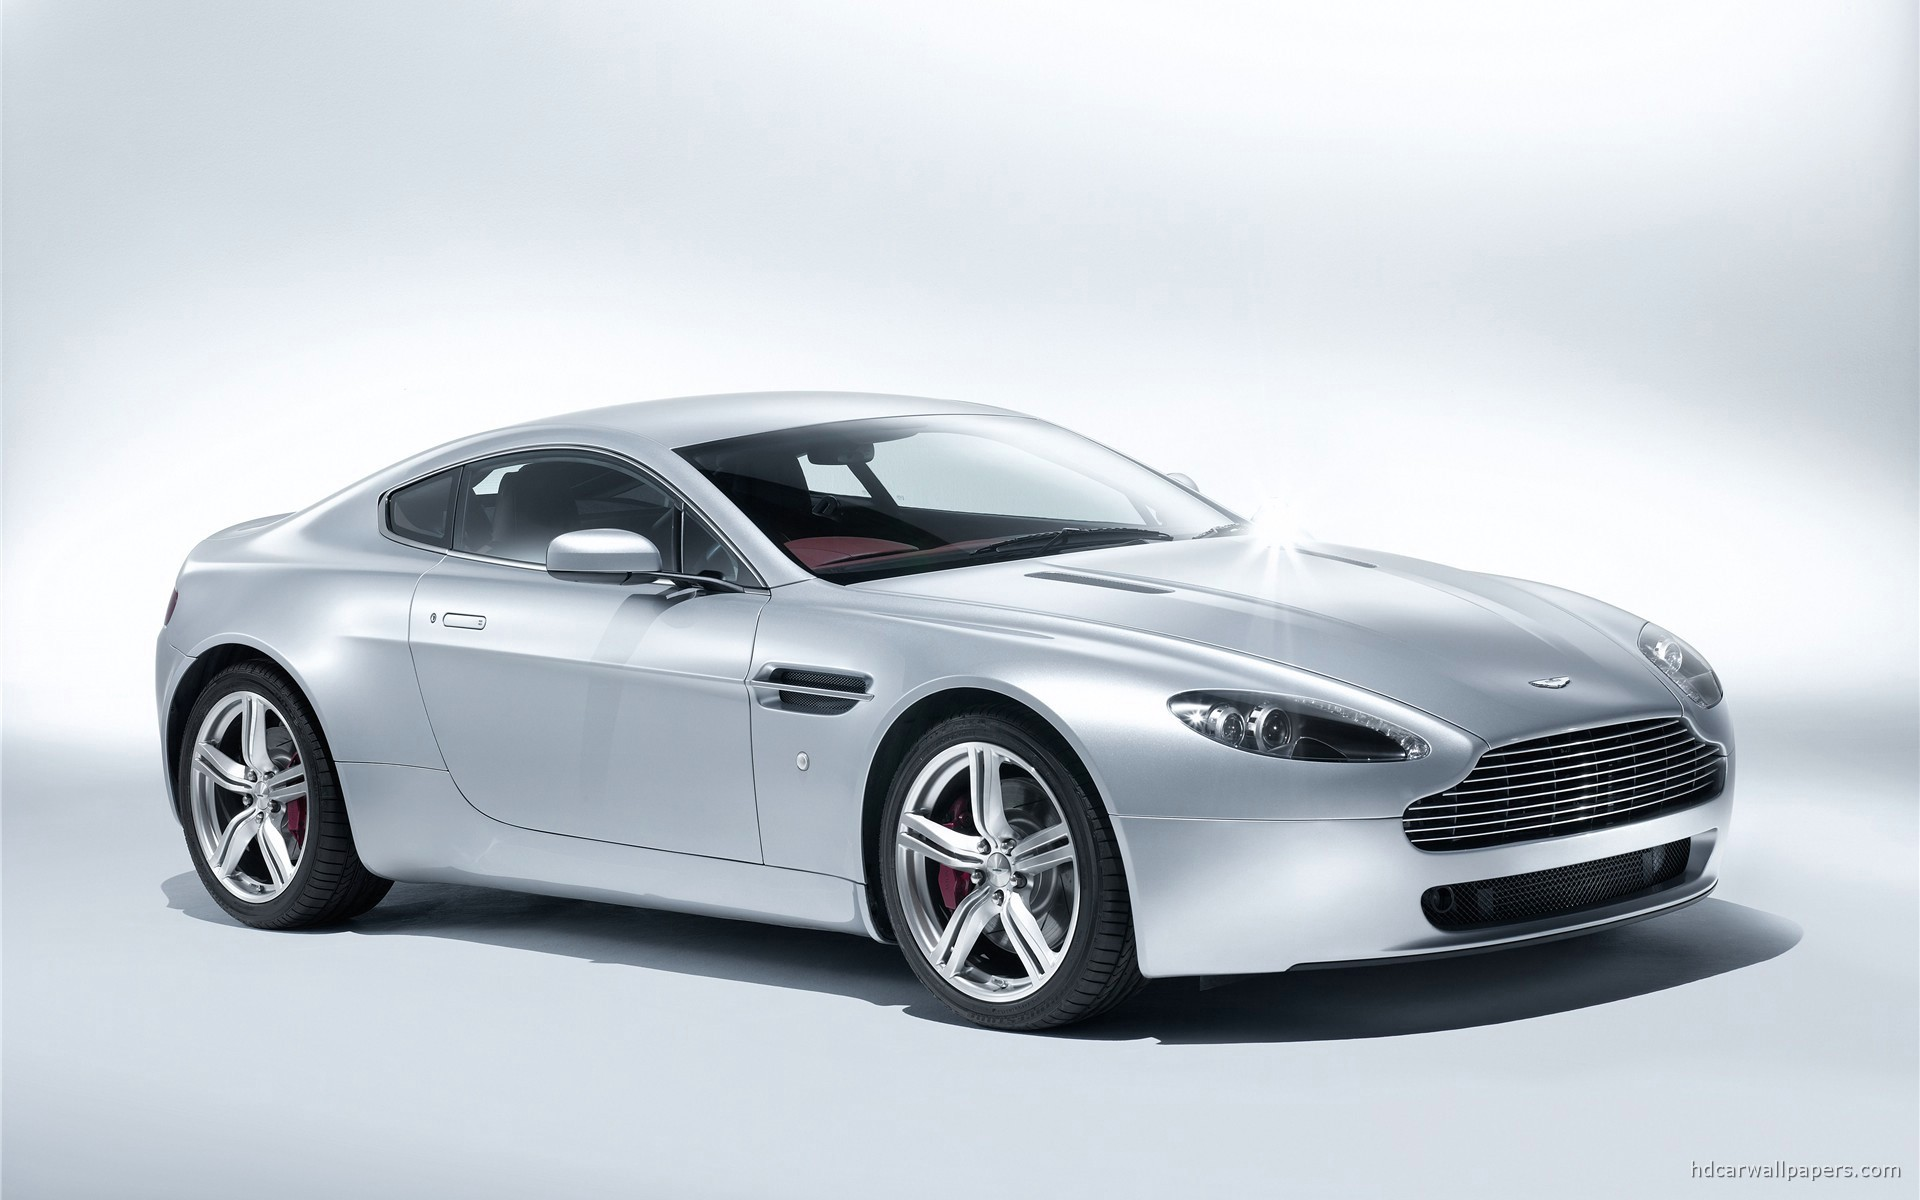 Aston Martin V8 Vantage Coupe 2009 Wallpaper HD Car